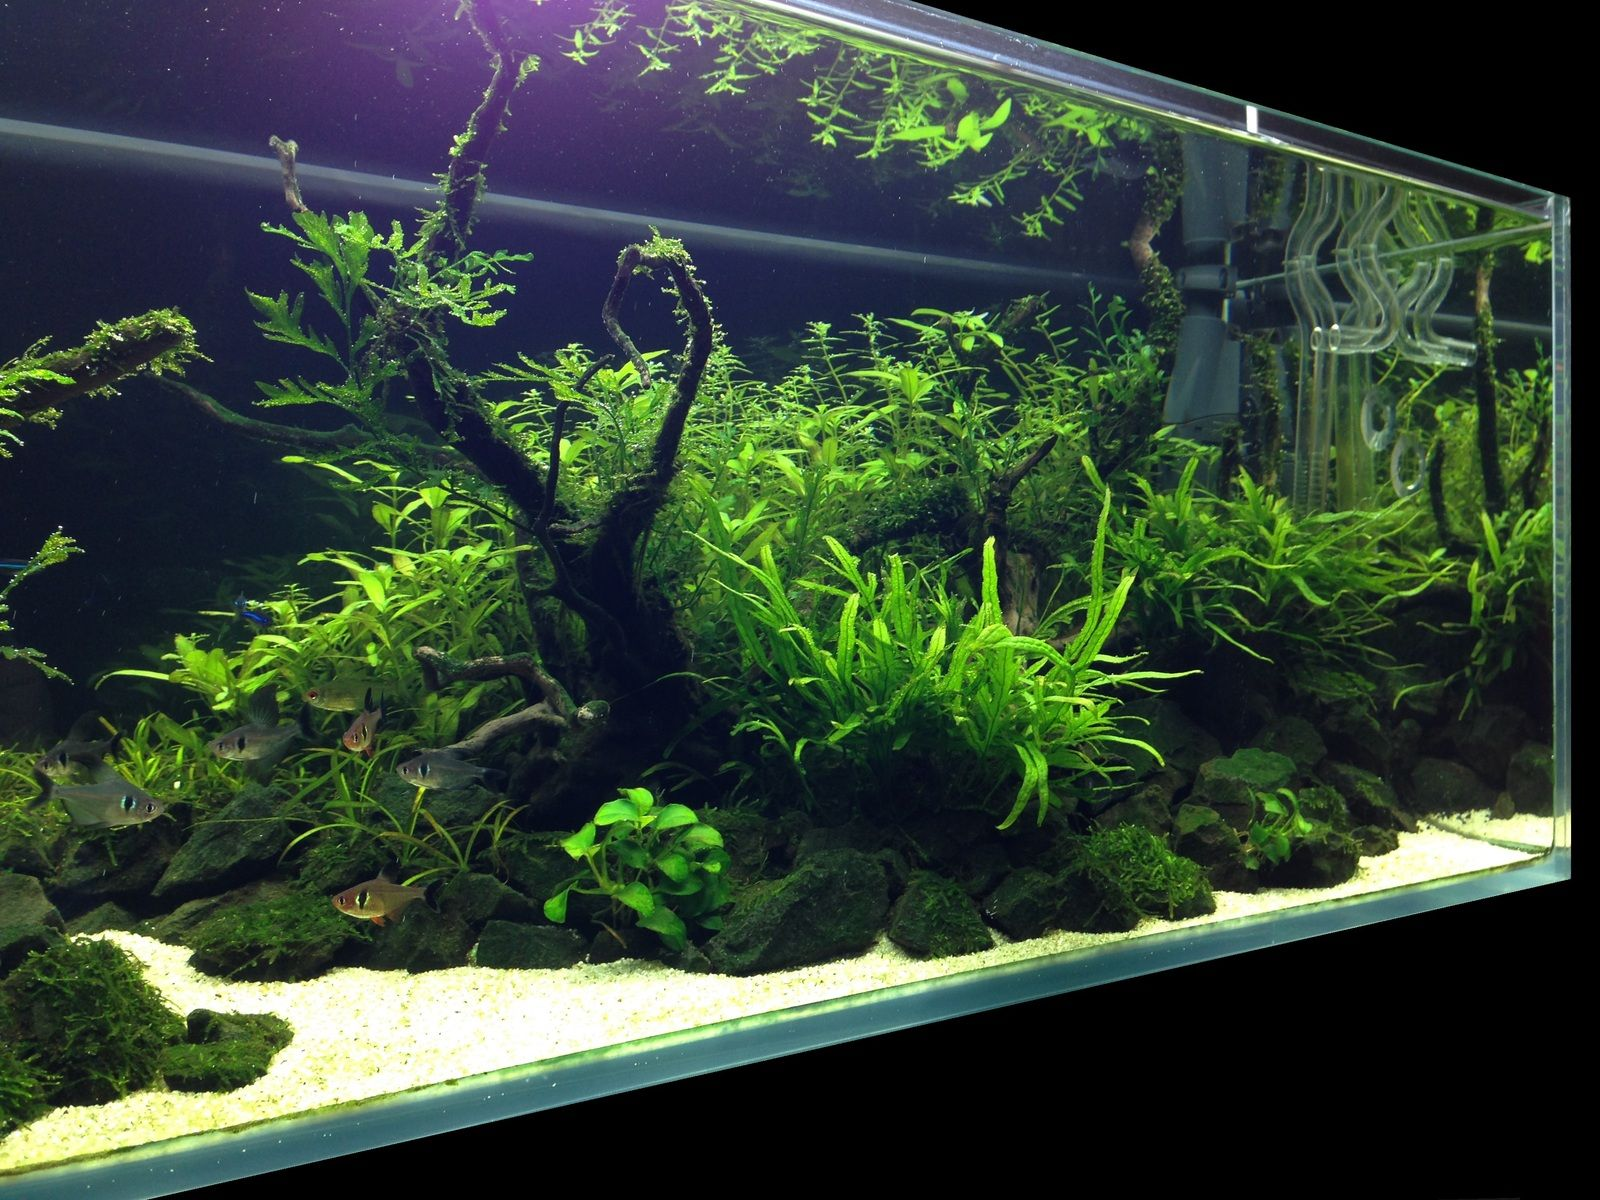 Planted tank nature aquarium aquascape aquarien for Planted tank fish